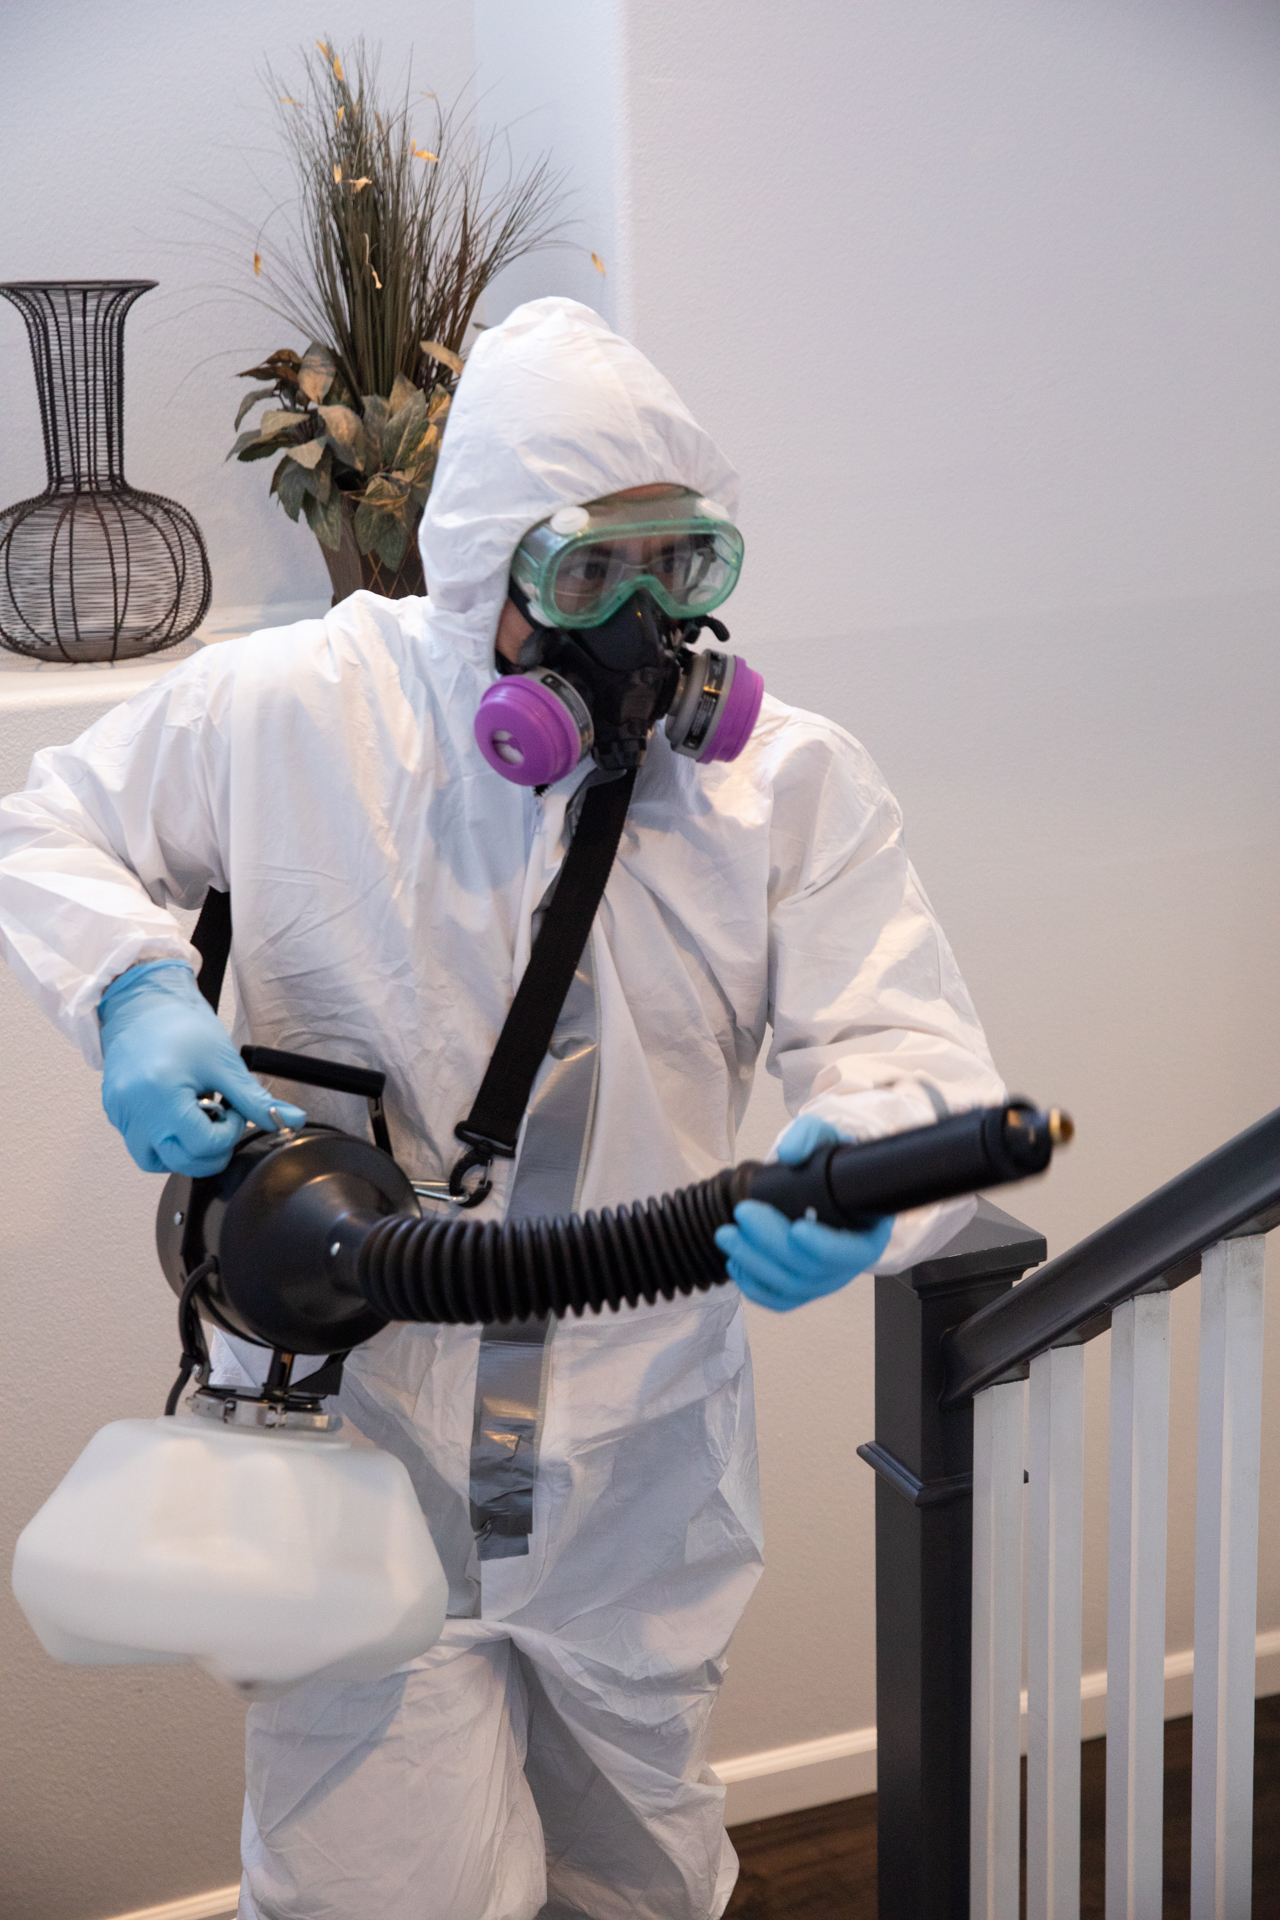 Our professional biohazard cleanup and decontamination services are available for Residential and Commercial properties!